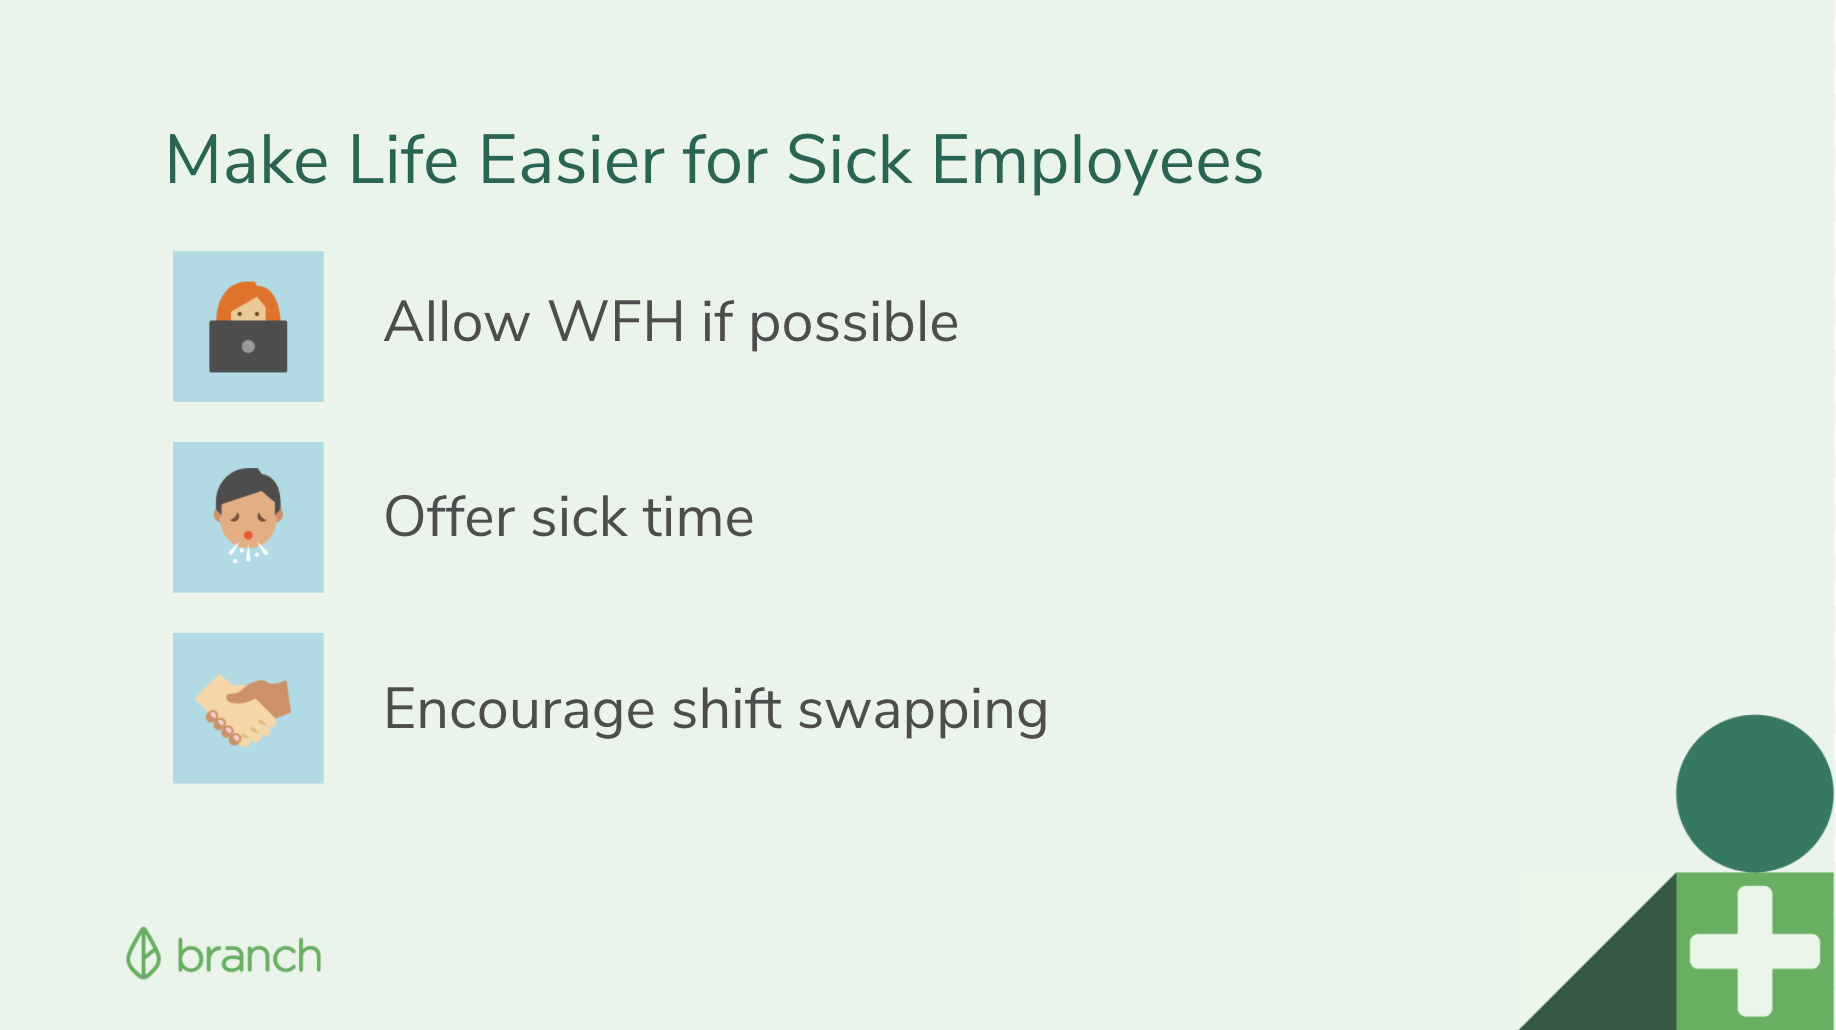 Ways to Make Life Easier for Sick Employees